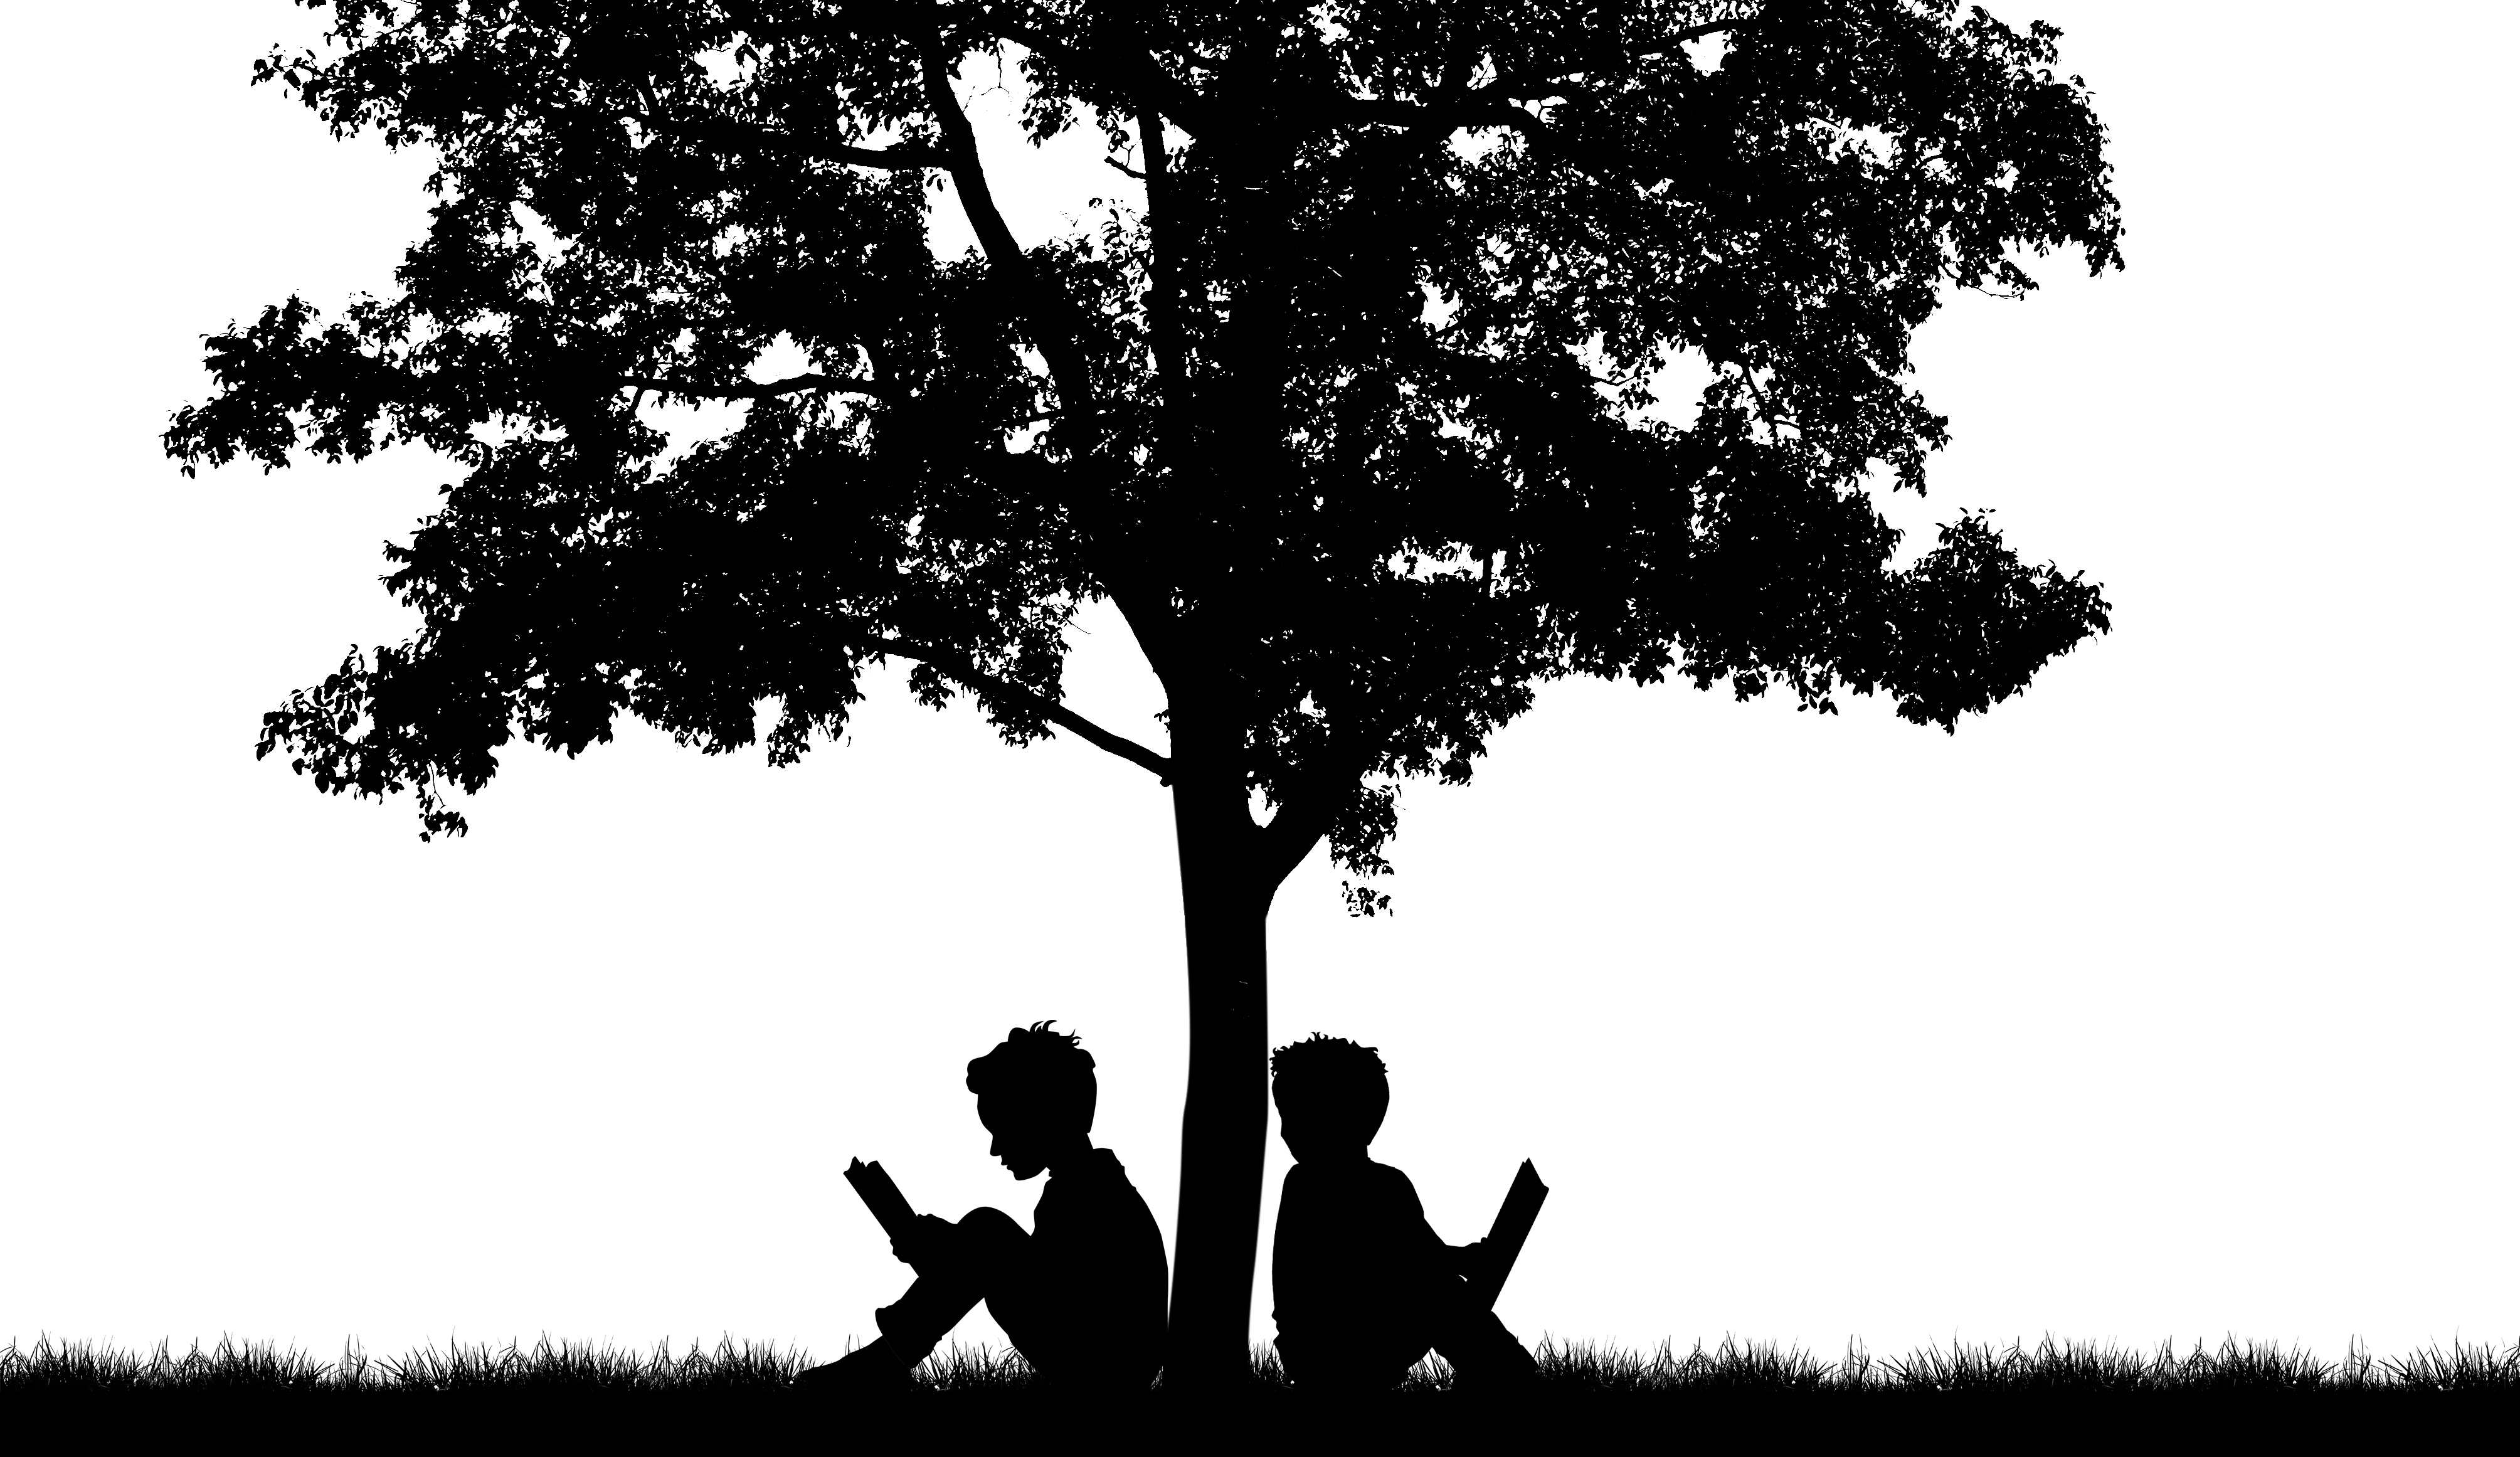 Silhouette of Two People Reading Under a Tree